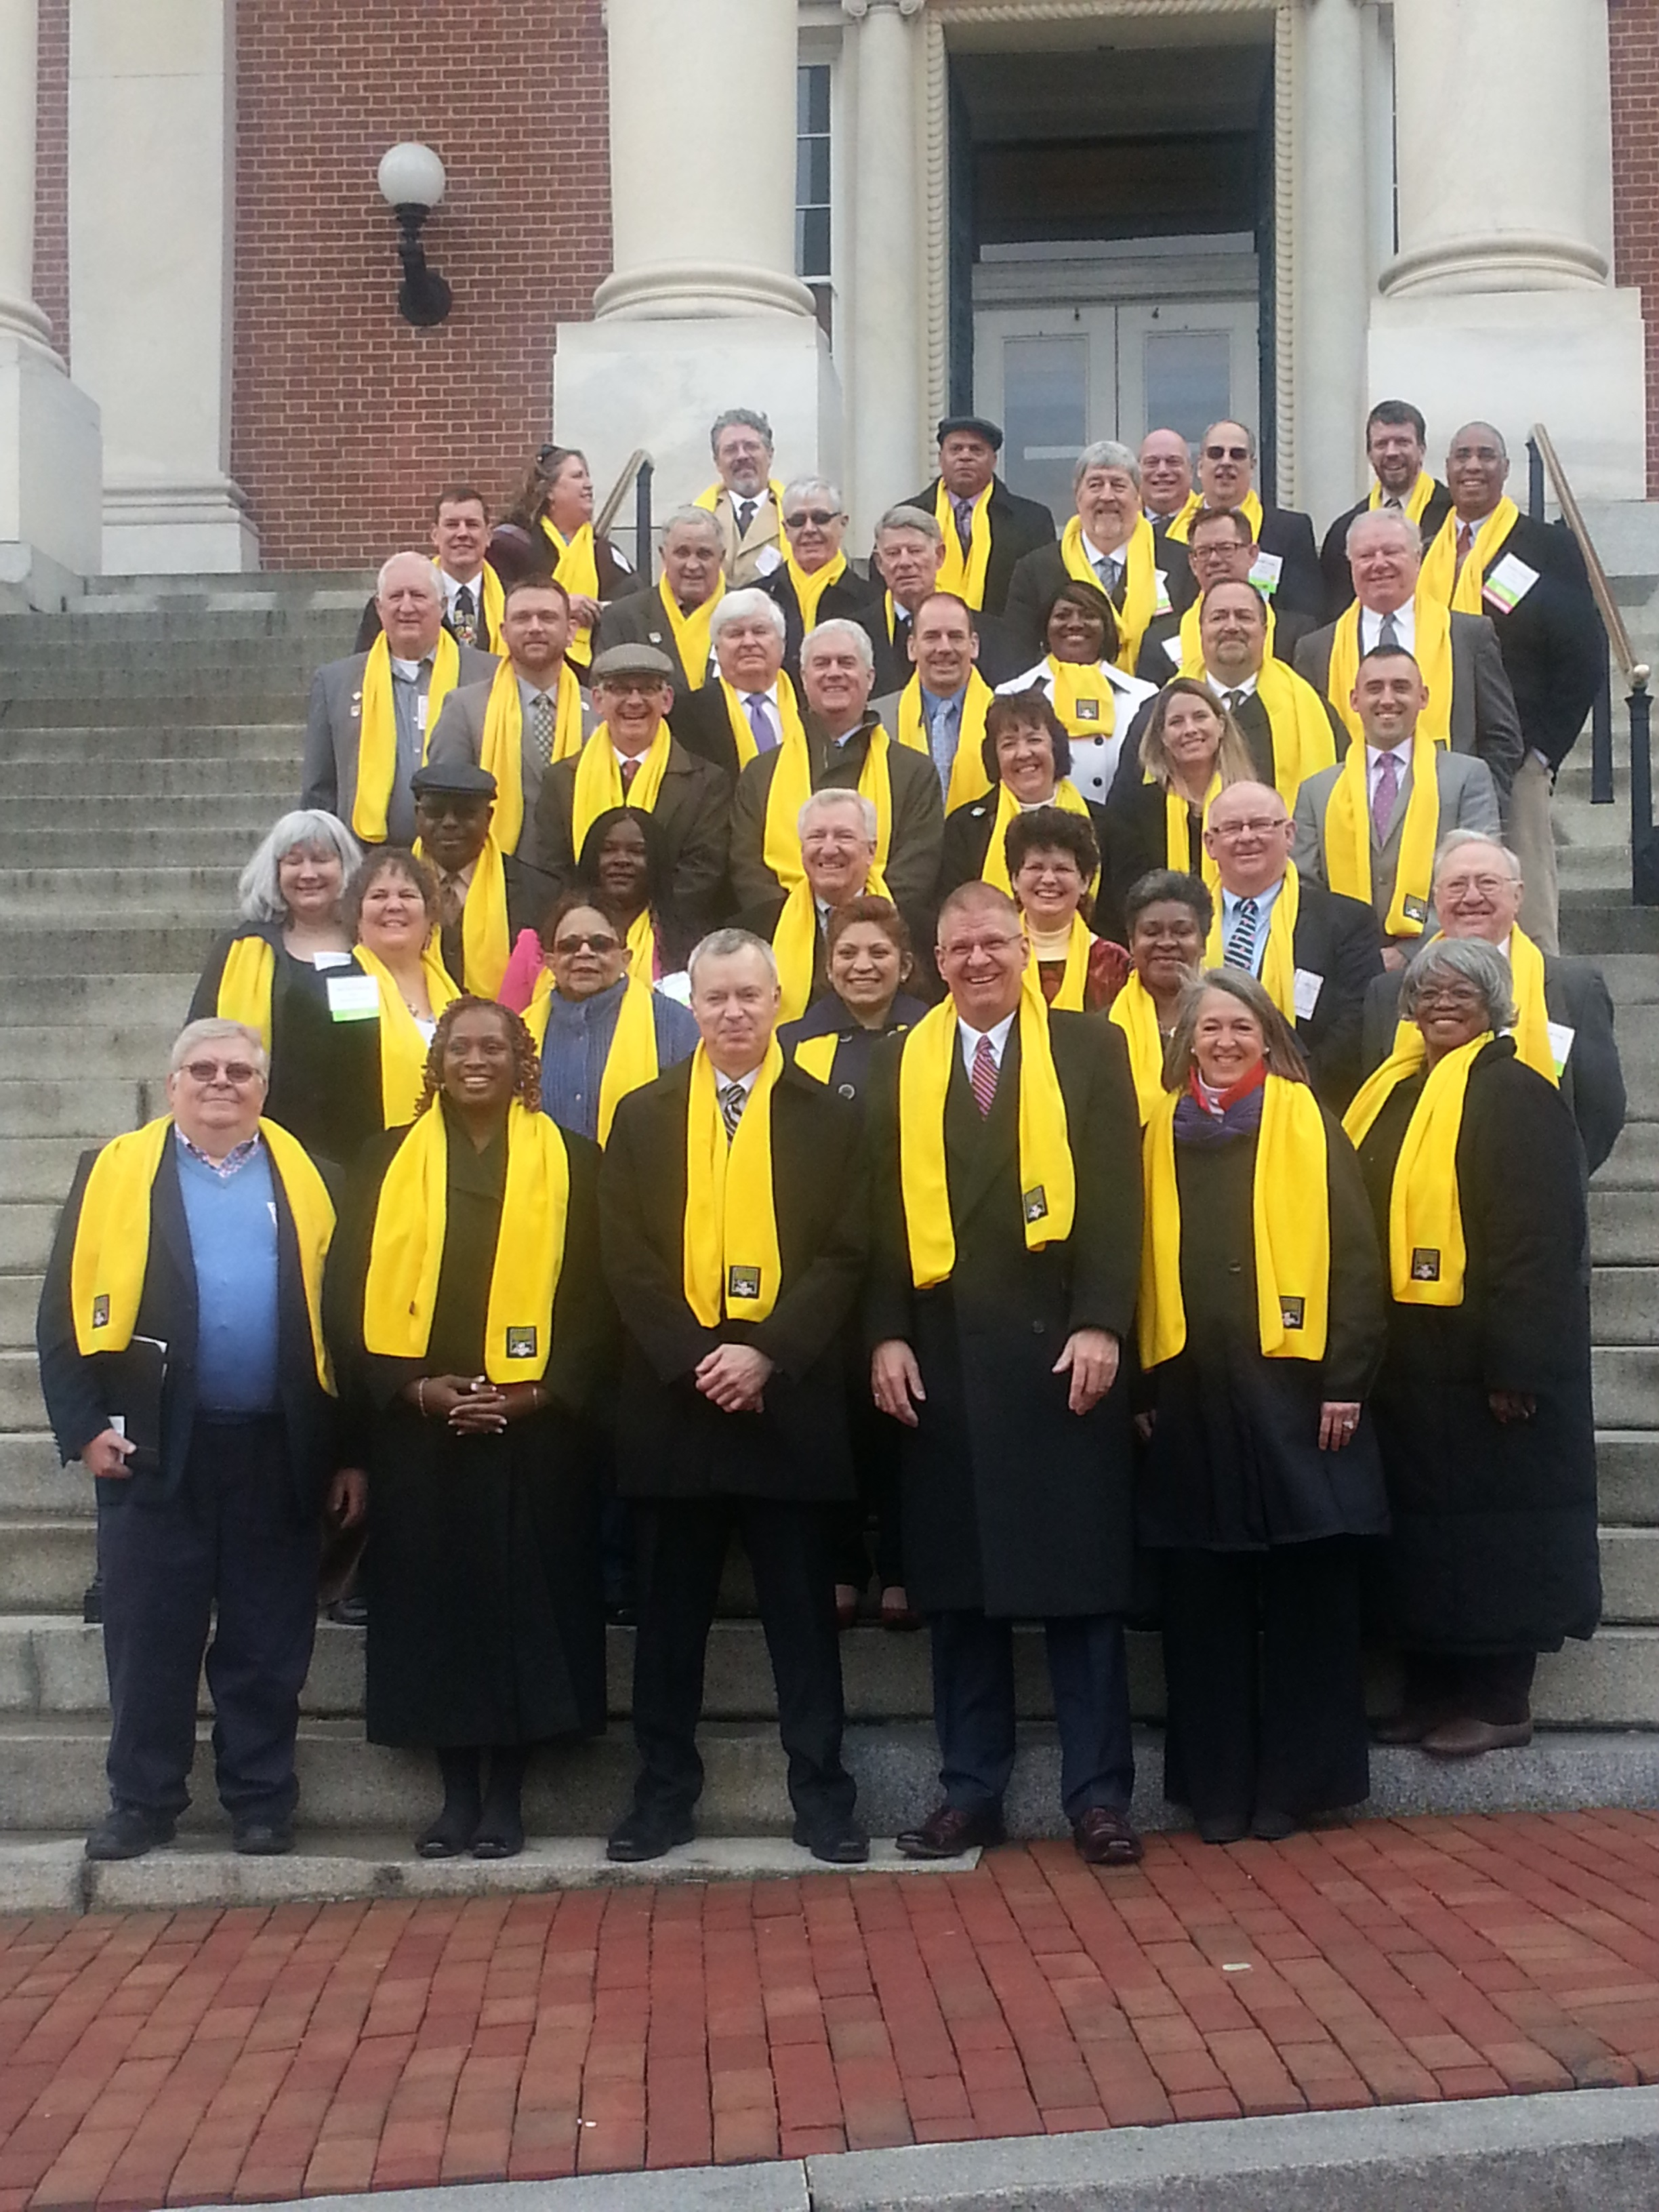 Marylands Mayors on the Annapolis Capital Steps